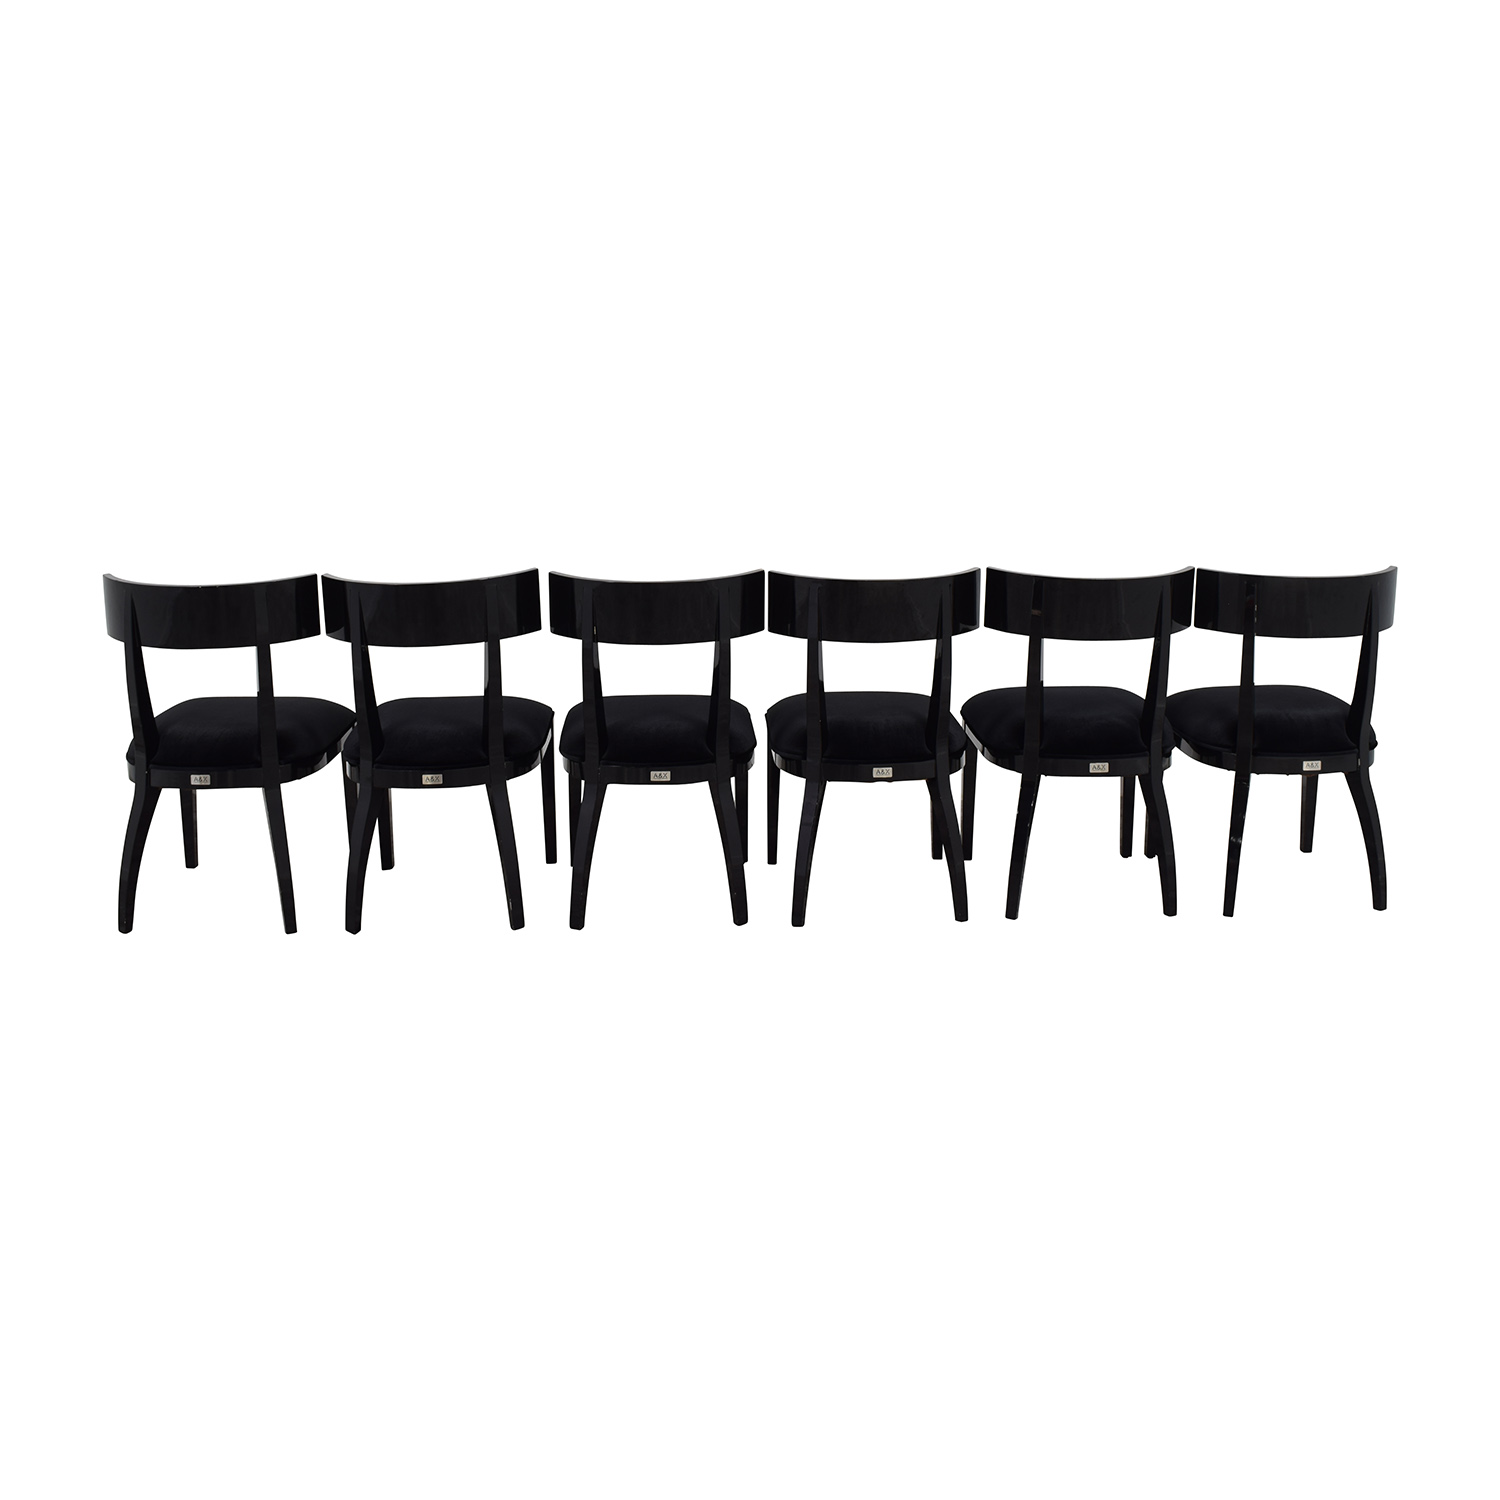 A & X Casa Luxury Collection Art Deco Black Dining Chairs